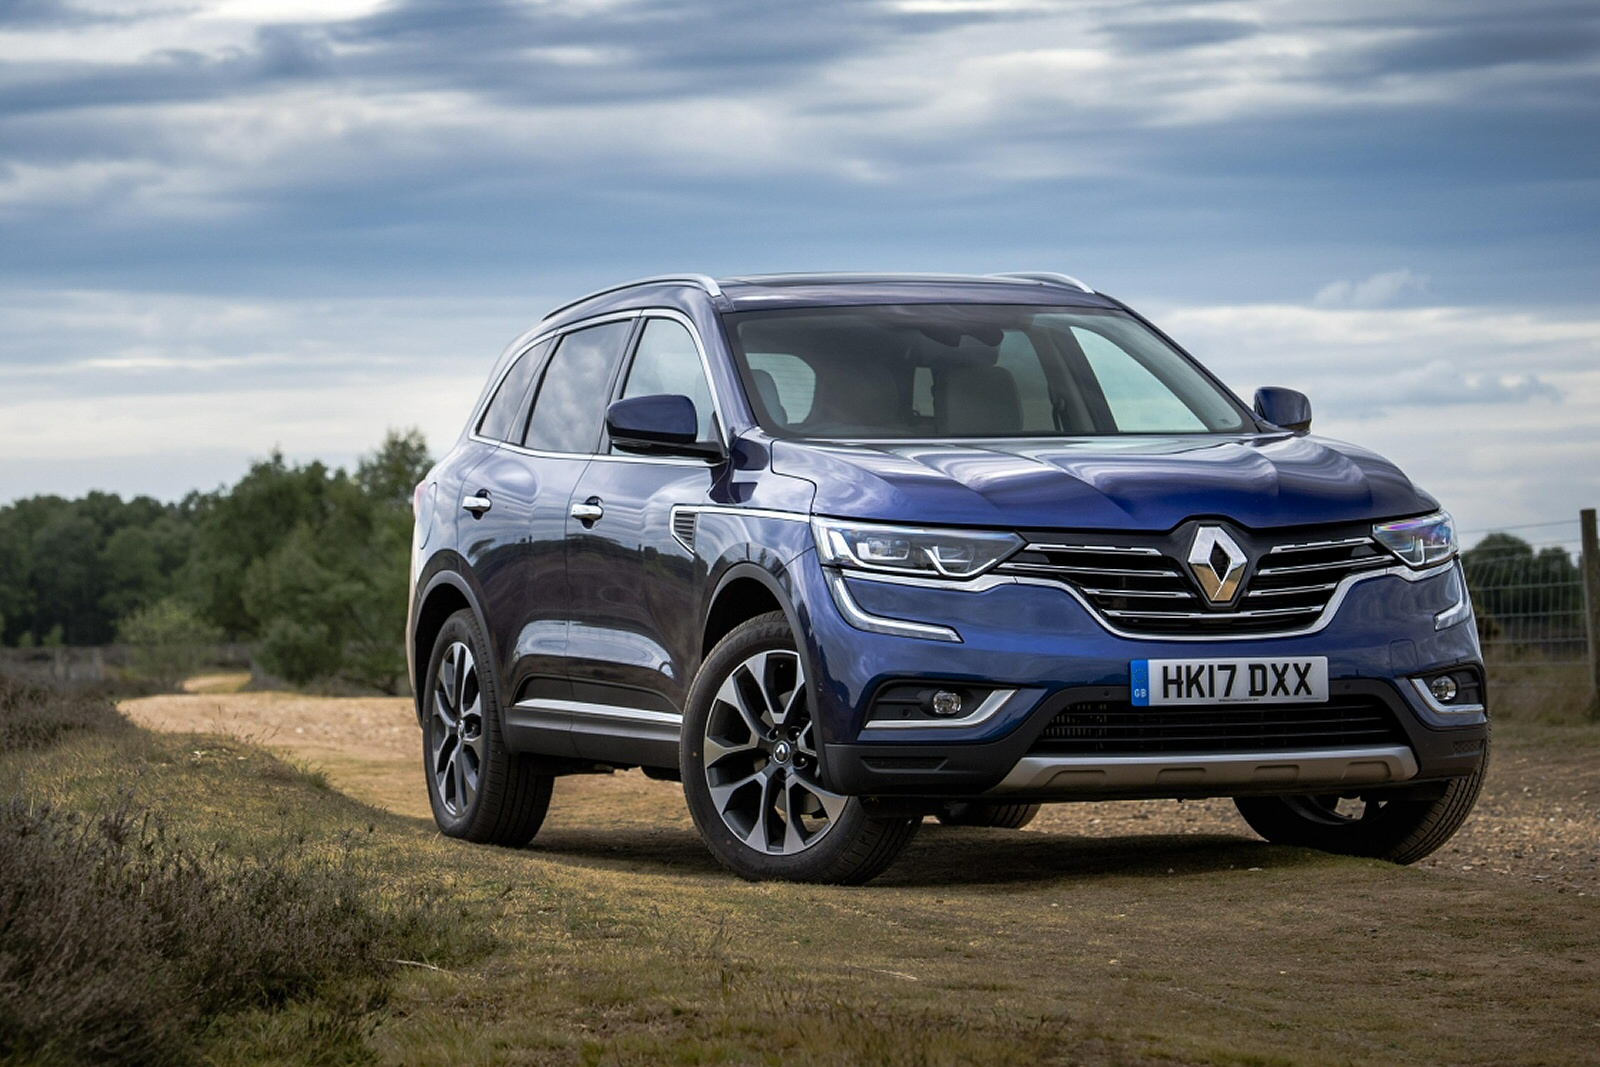 new renault koleos 2 0 dci gt line 5dr x tronic diesel. Black Bedroom Furniture Sets. Home Design Ideas